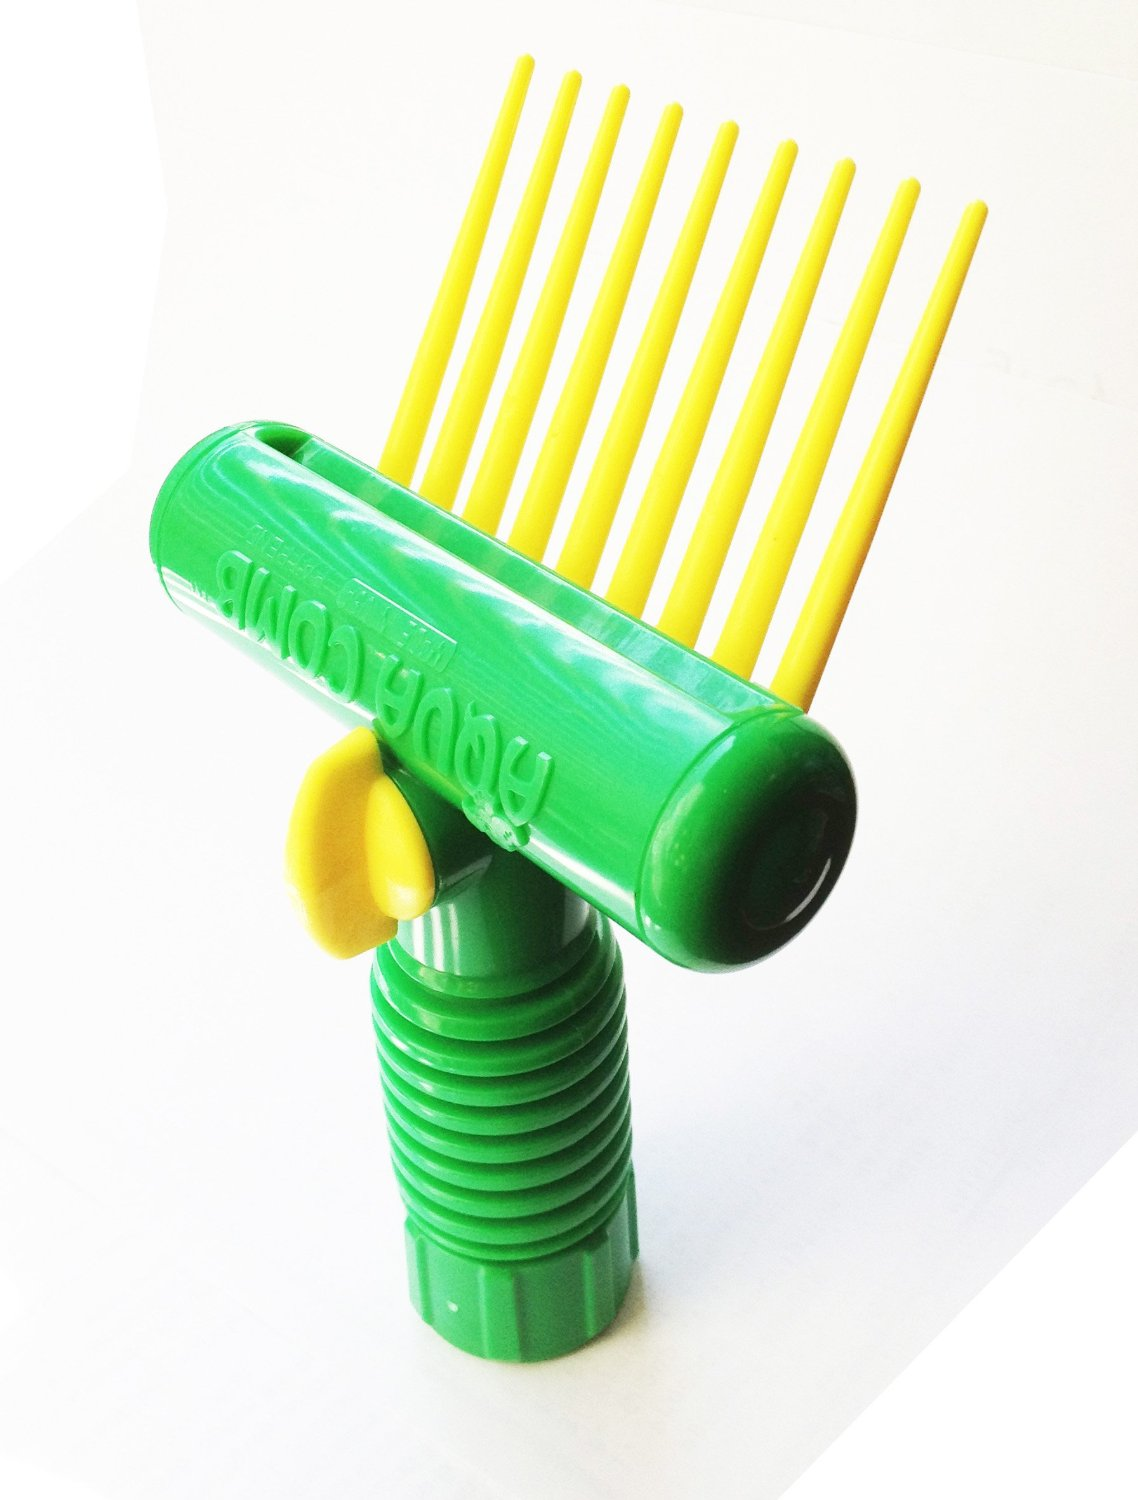 AQUA COMB SPA - Aqua Comb Filter Cleaner